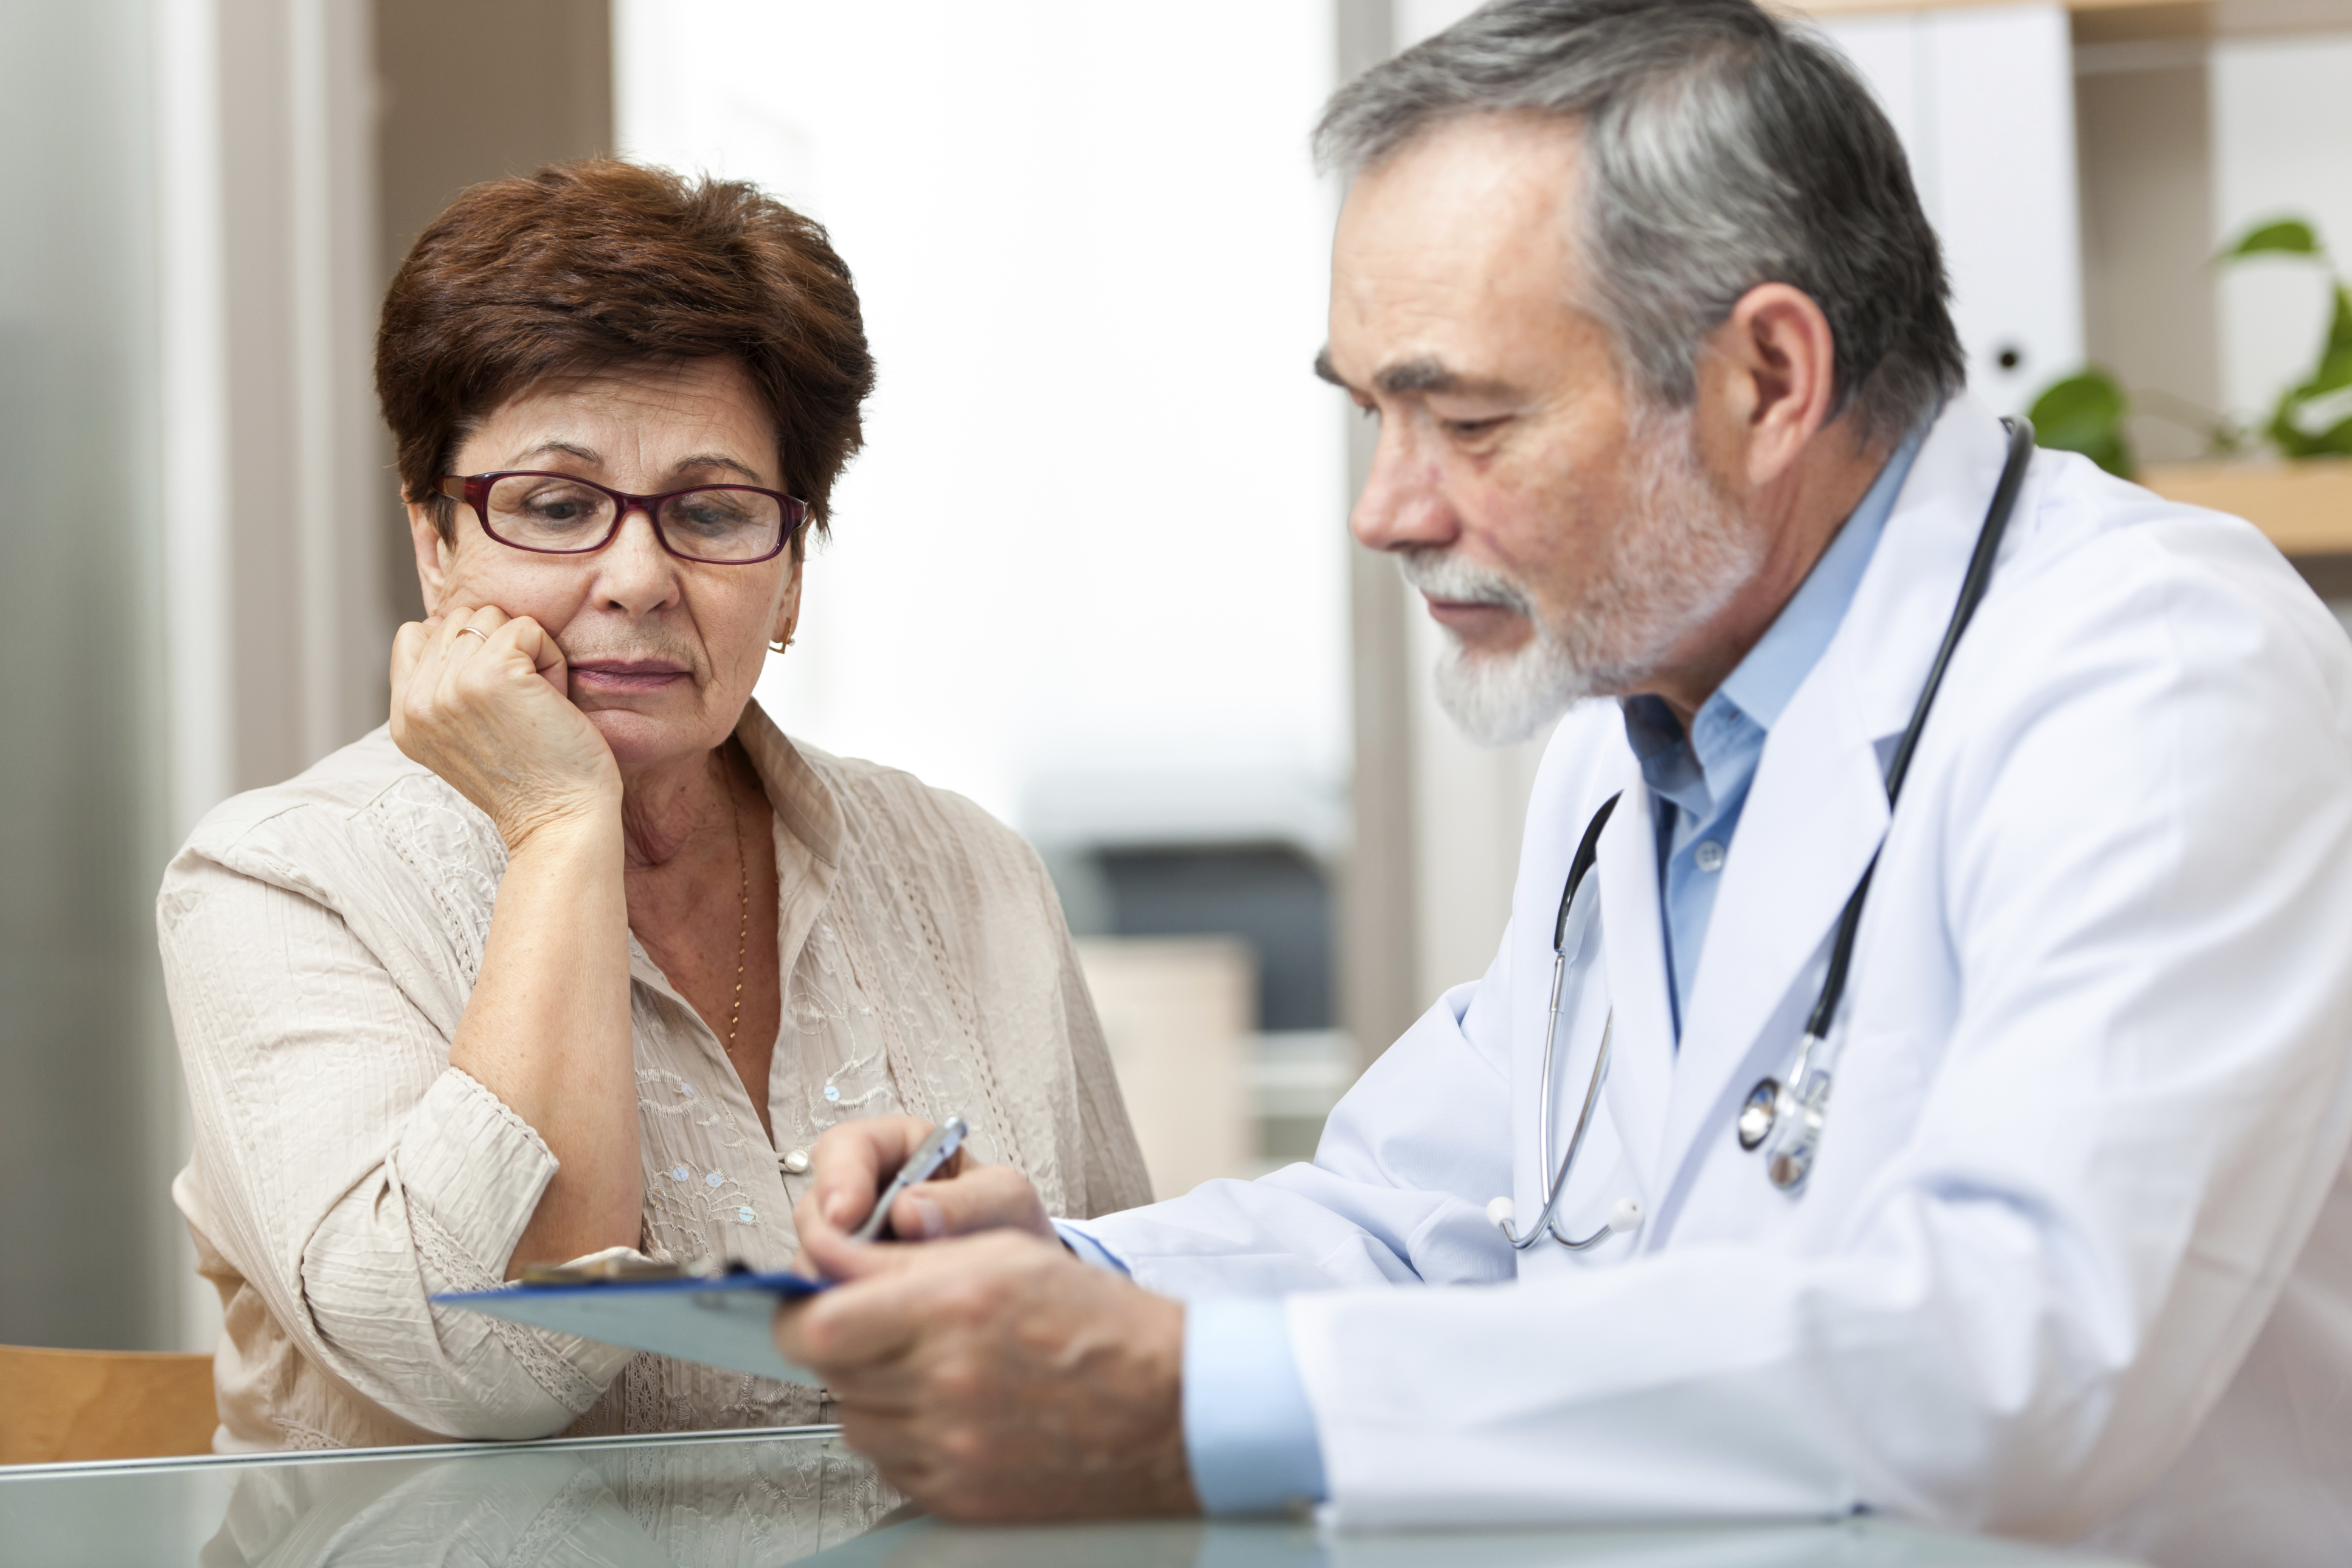 What advice would you have for someone who's newly diagnosed with cancer?